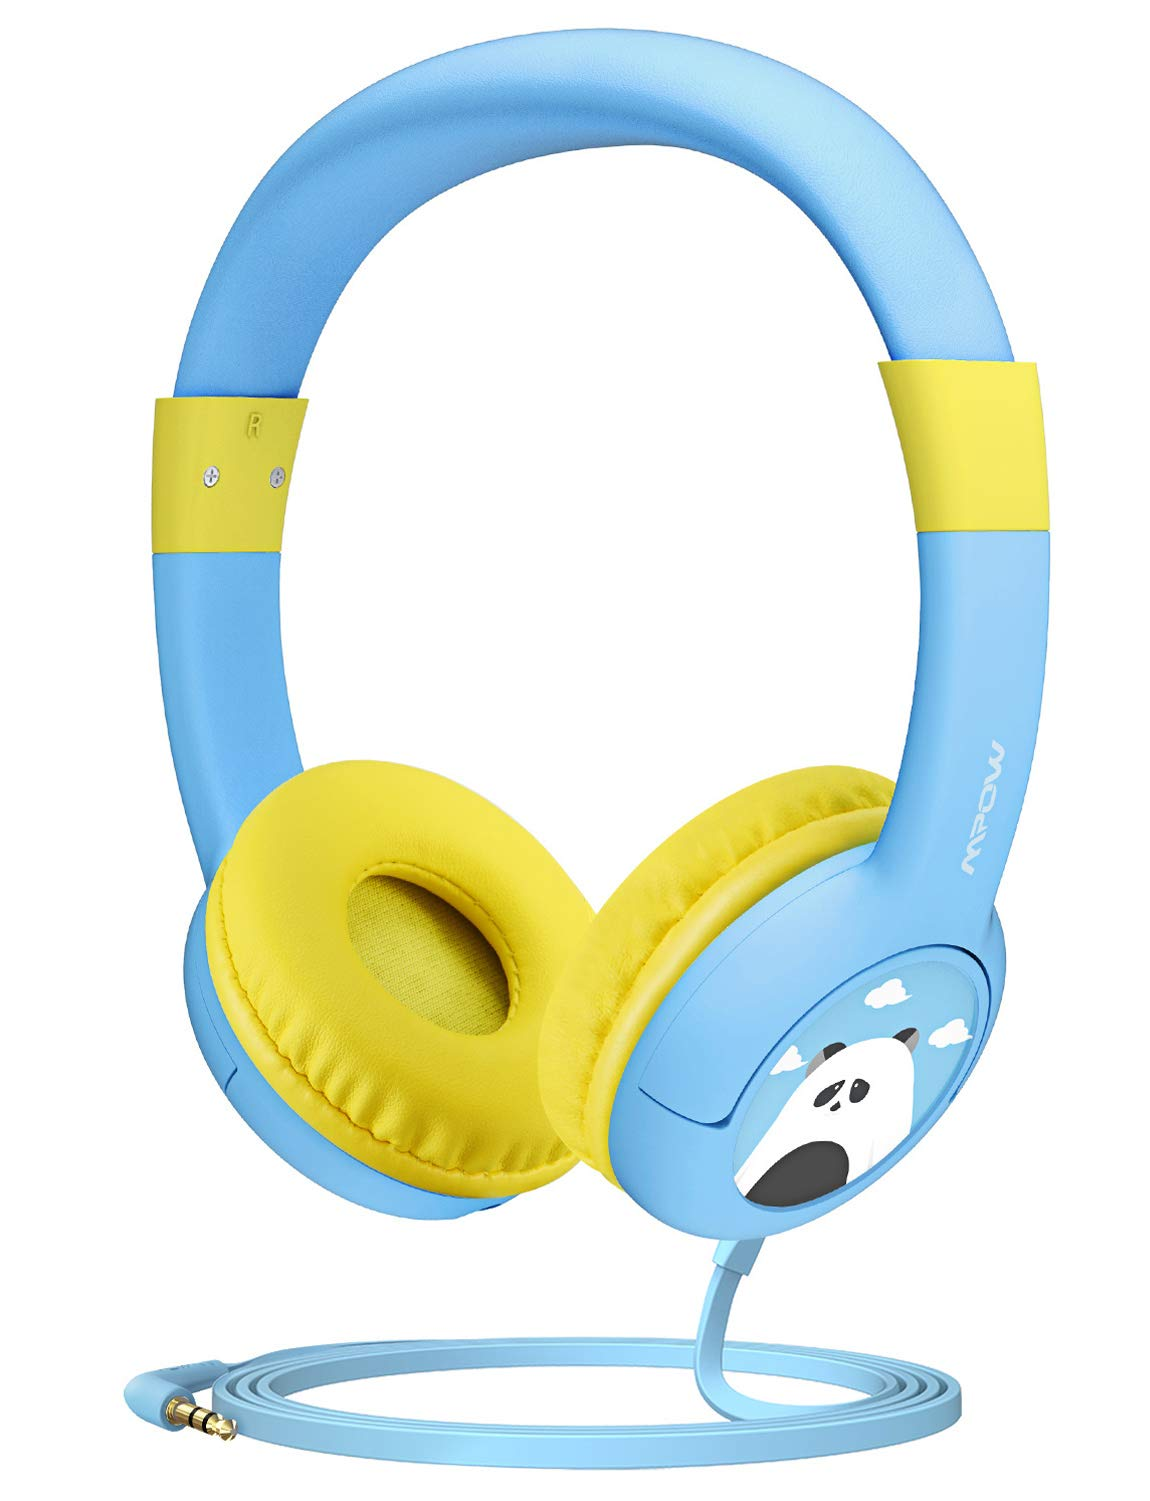 Mpow CH1 Kids Headphones w/85dB Volume Limited Hearing Protection & Music Sharing Function, Kids Friendly Safe Food Grade Material, Tangle-Free Cord, Wired On-Ear Headphones for Children/Toddler/Baby by Mpow